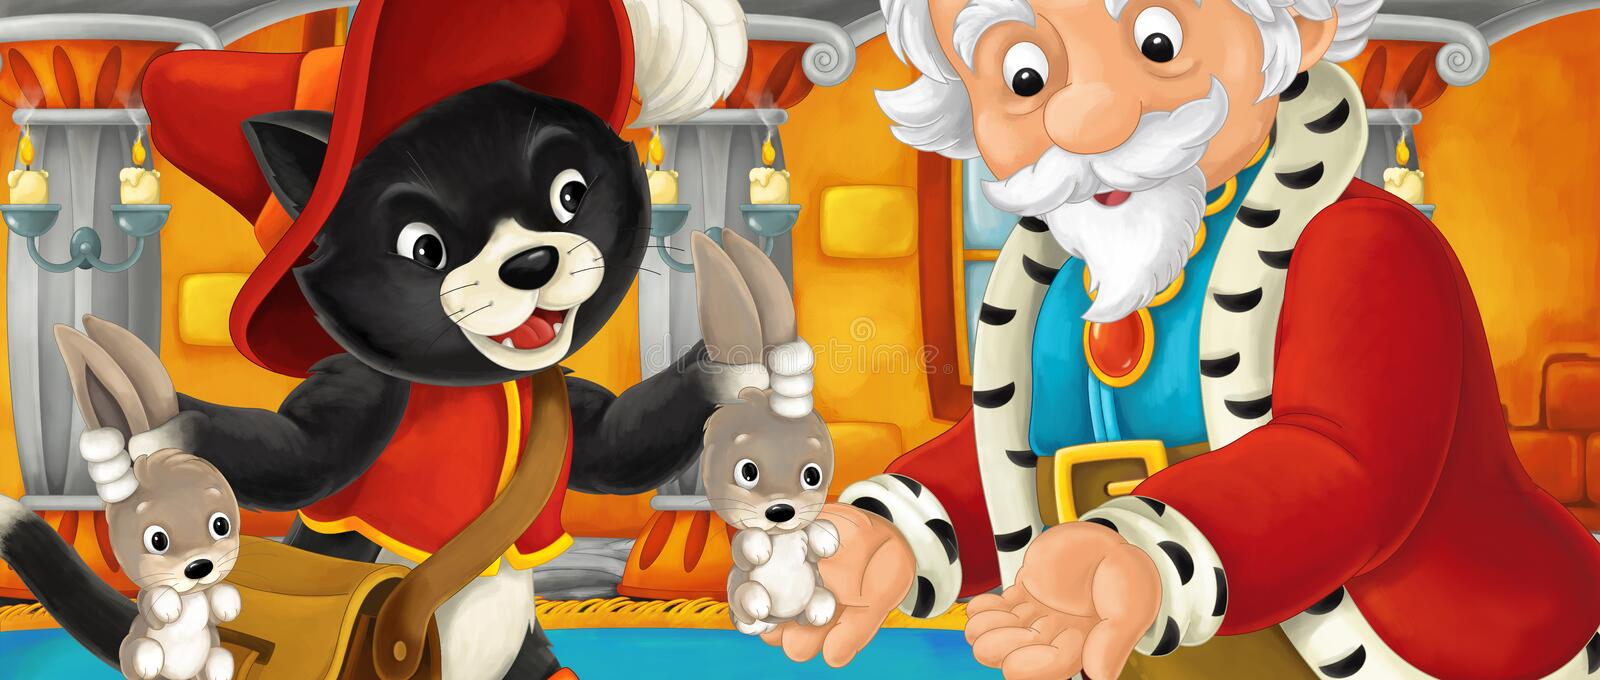 Cartoon cat visiting king in his castle and giving him hares royalty free illustration